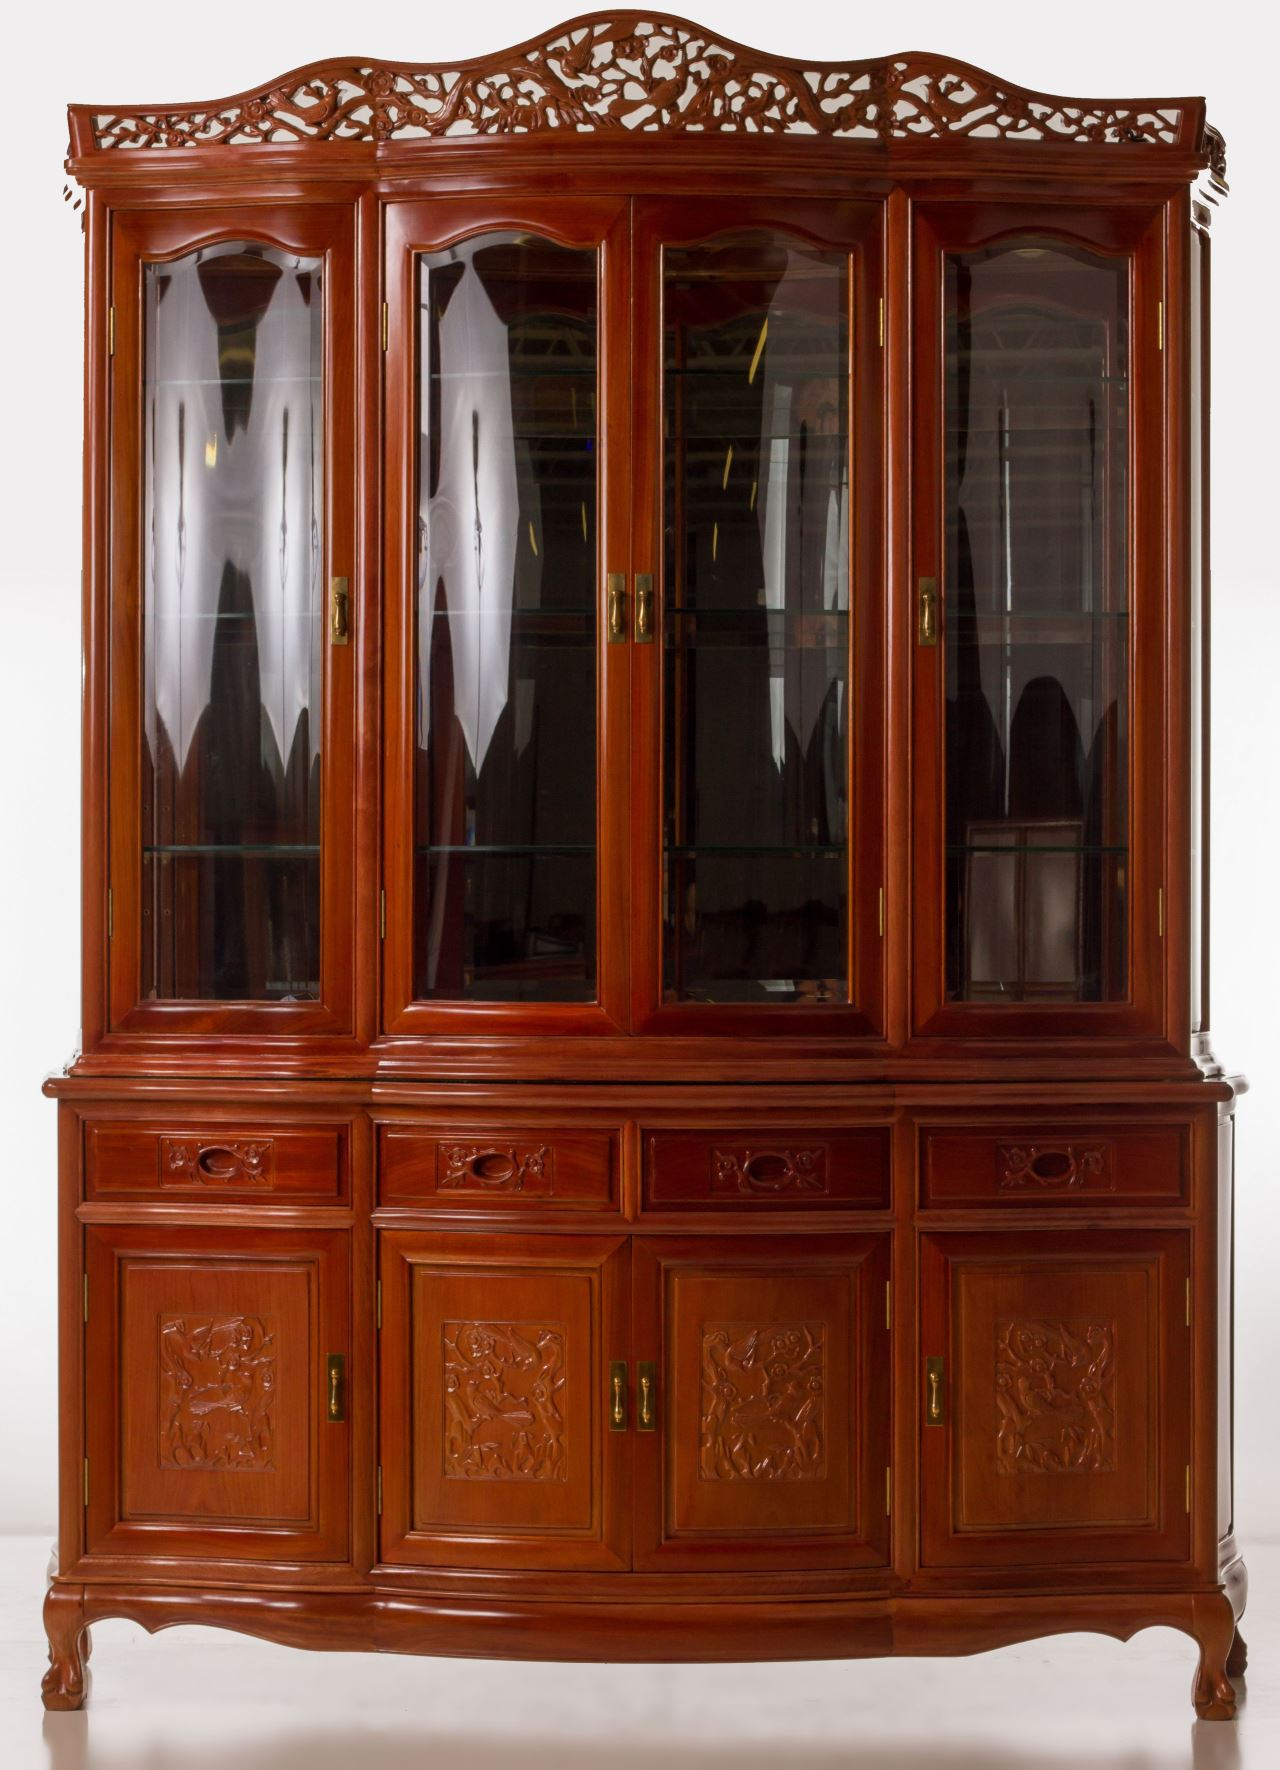 Furniture Markham Far Eastern Furnishings Solidwood Oriental Chinese